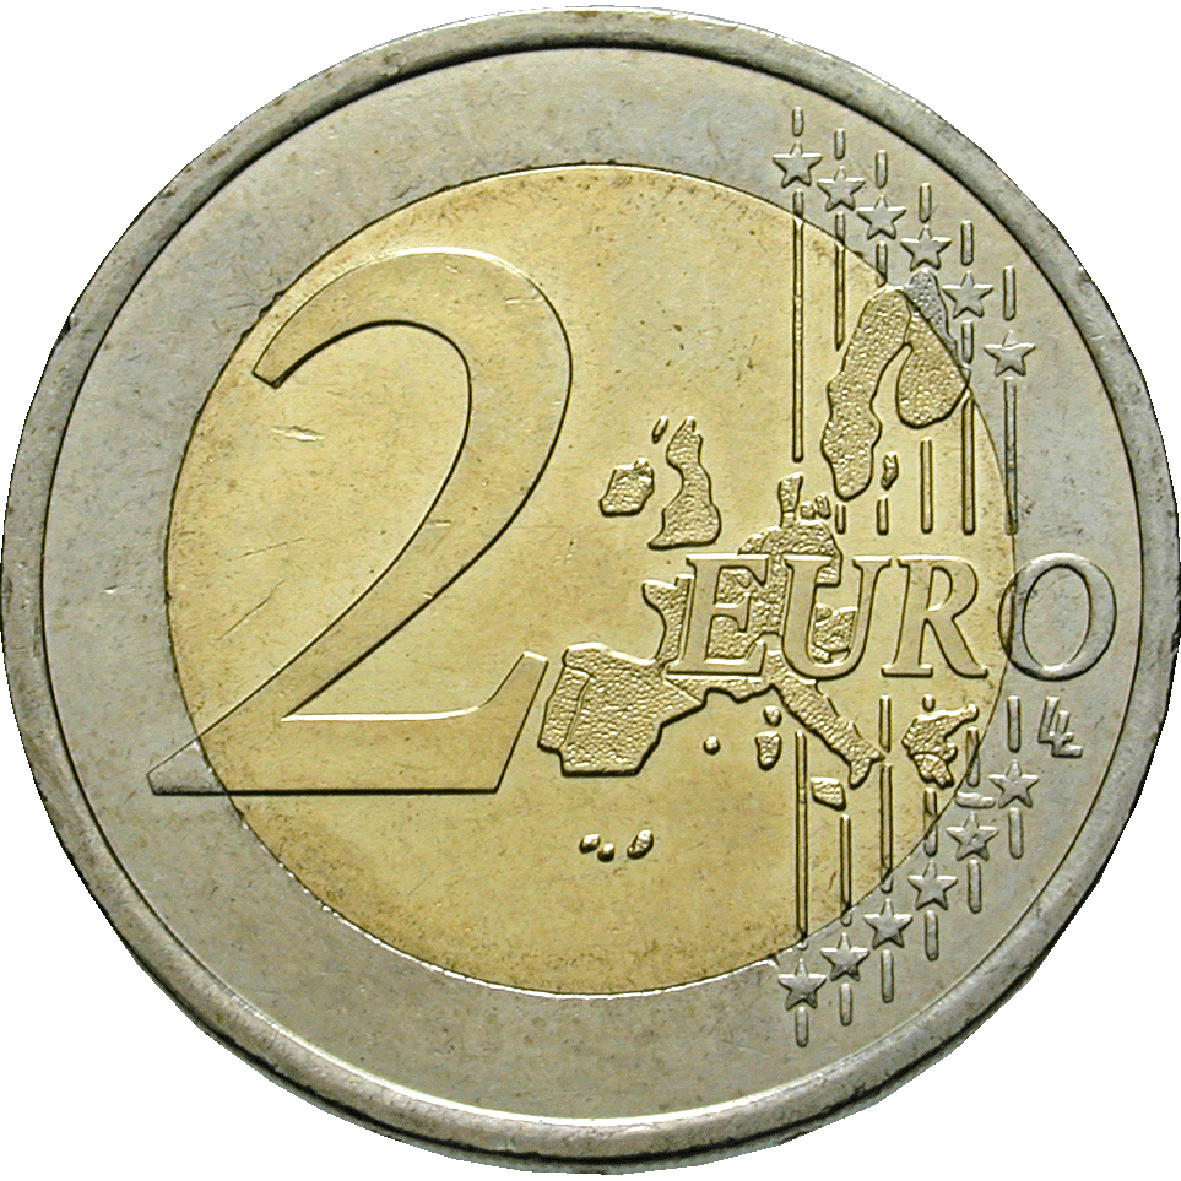 Republic of France, 2 Euros 2001 (obverse)